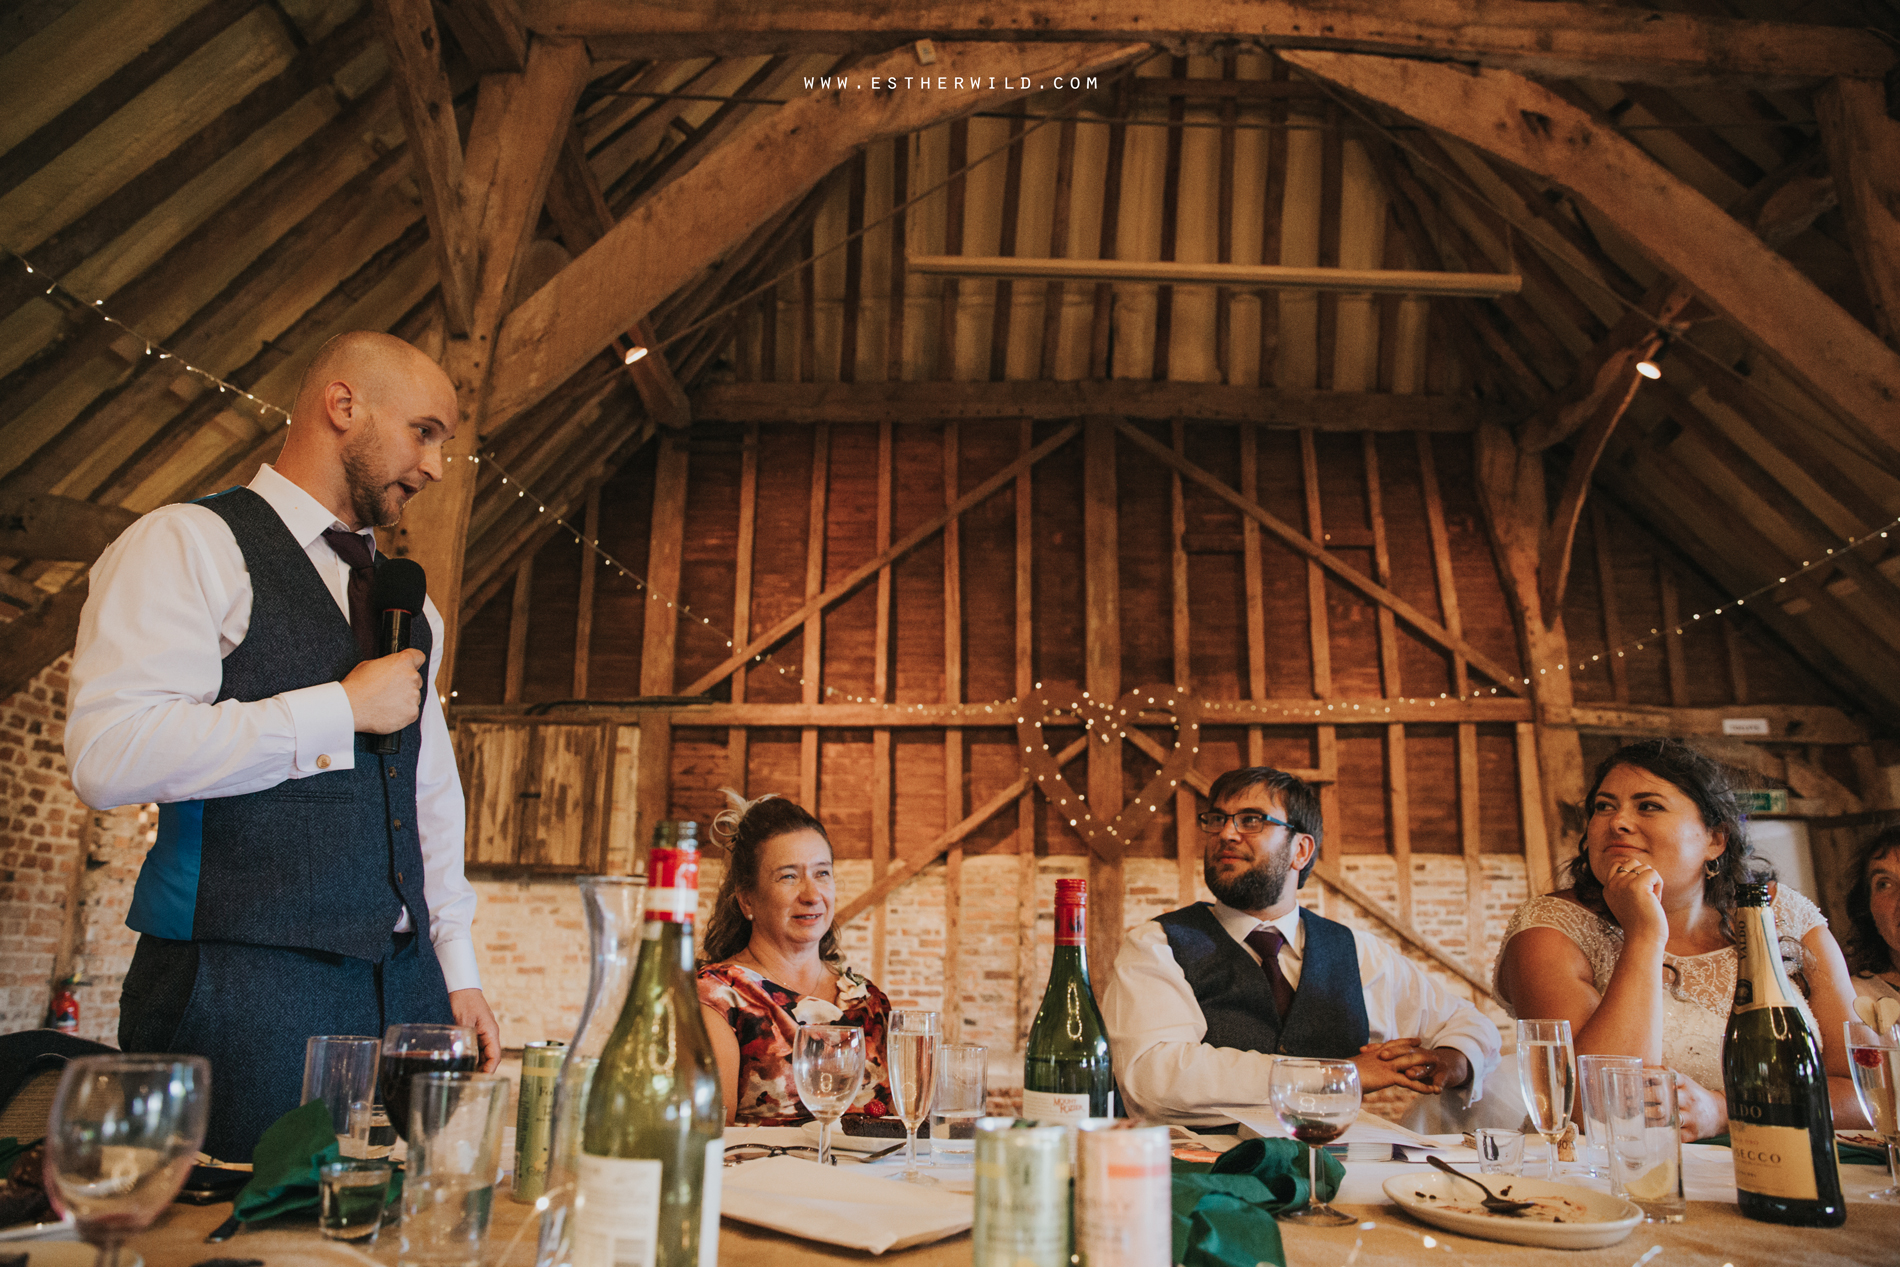 The_Red_Barn_Wedding_Kings_Lynn_Norfolk_IMG_2214.jpg